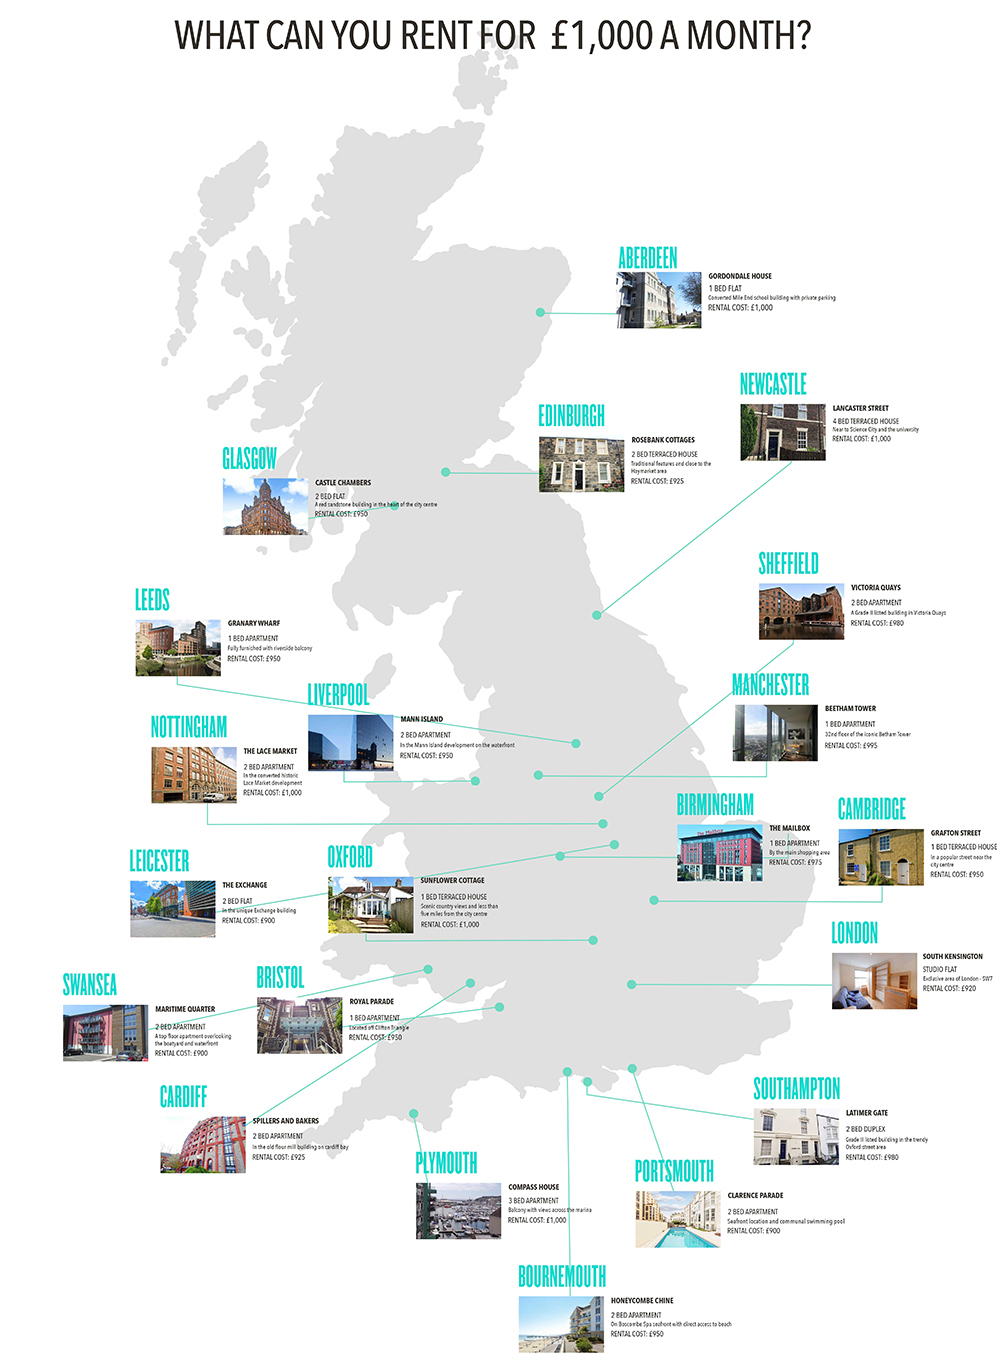 This is what you can rent for £1000 in cities across the UK